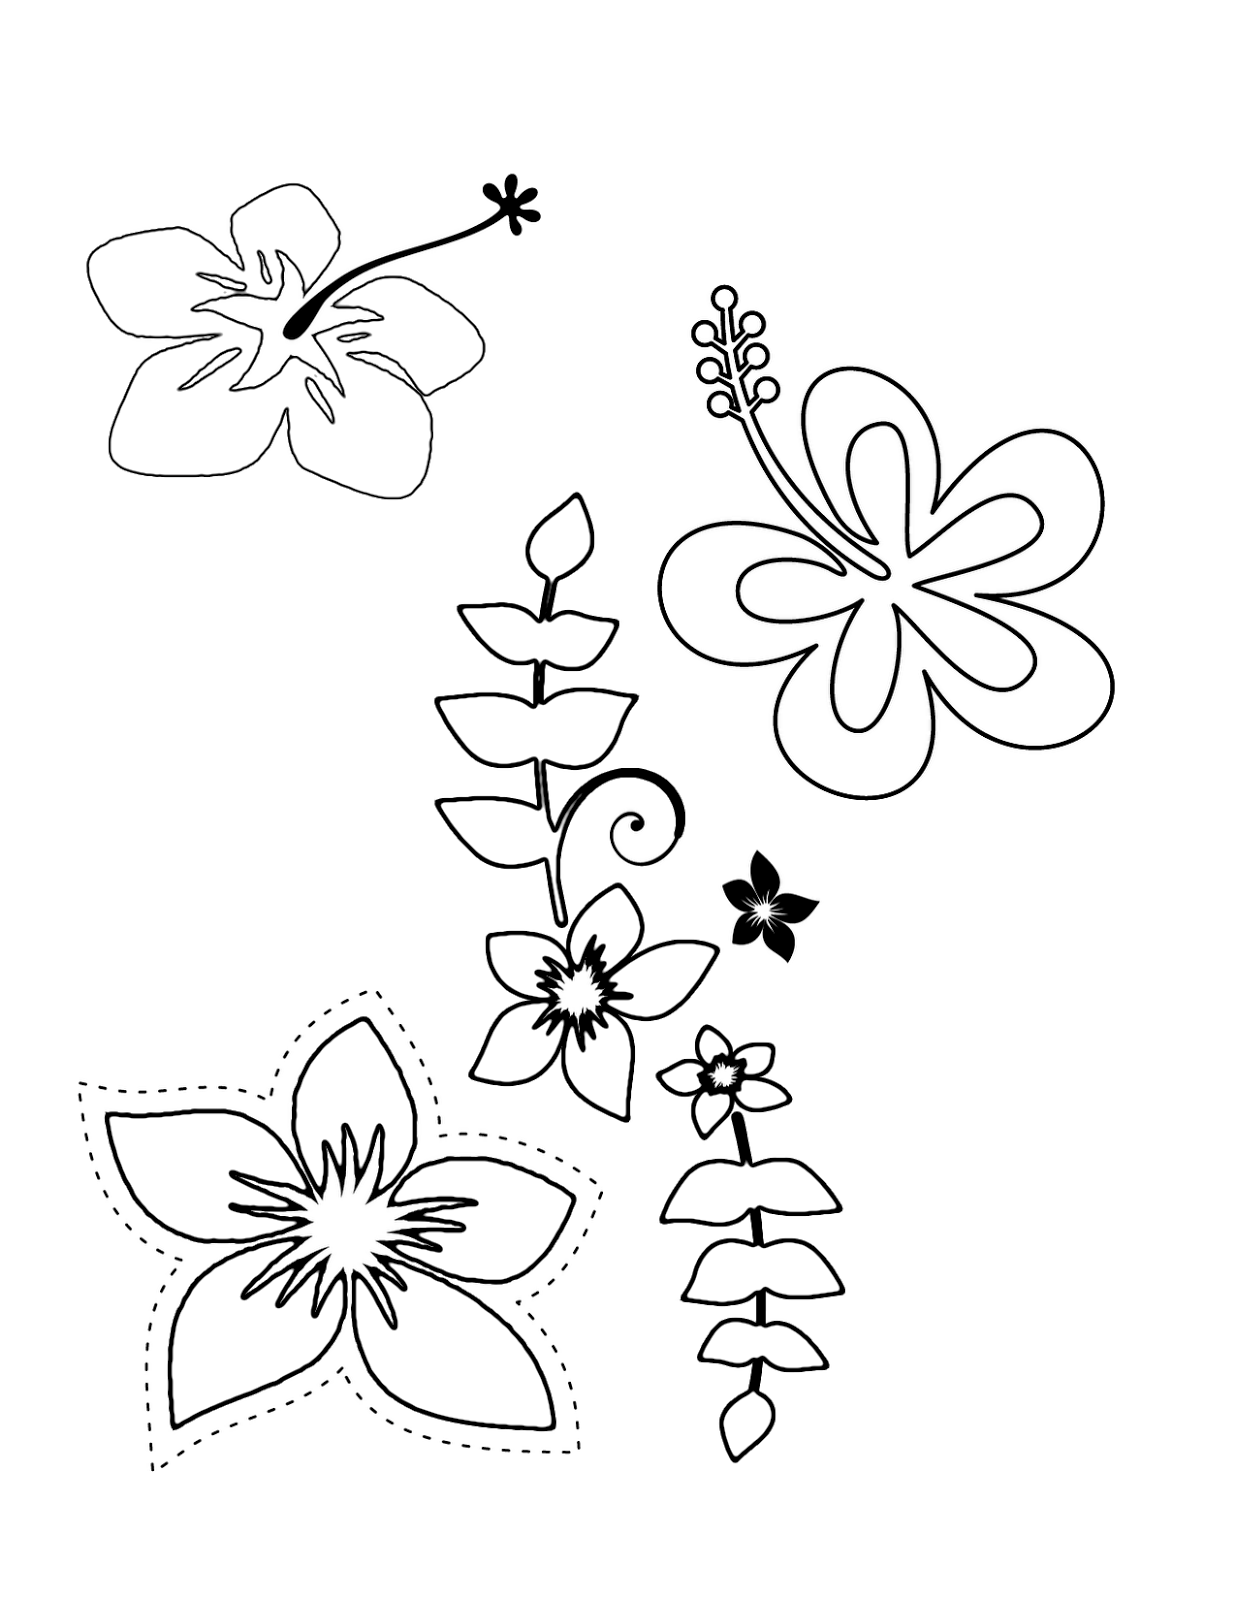 Tropical paradise coloring pages tropical flower coloring pages tropical paradise coloring pages tropical flower coloring pages 715481 coloring coloringbook izmirmasajfo